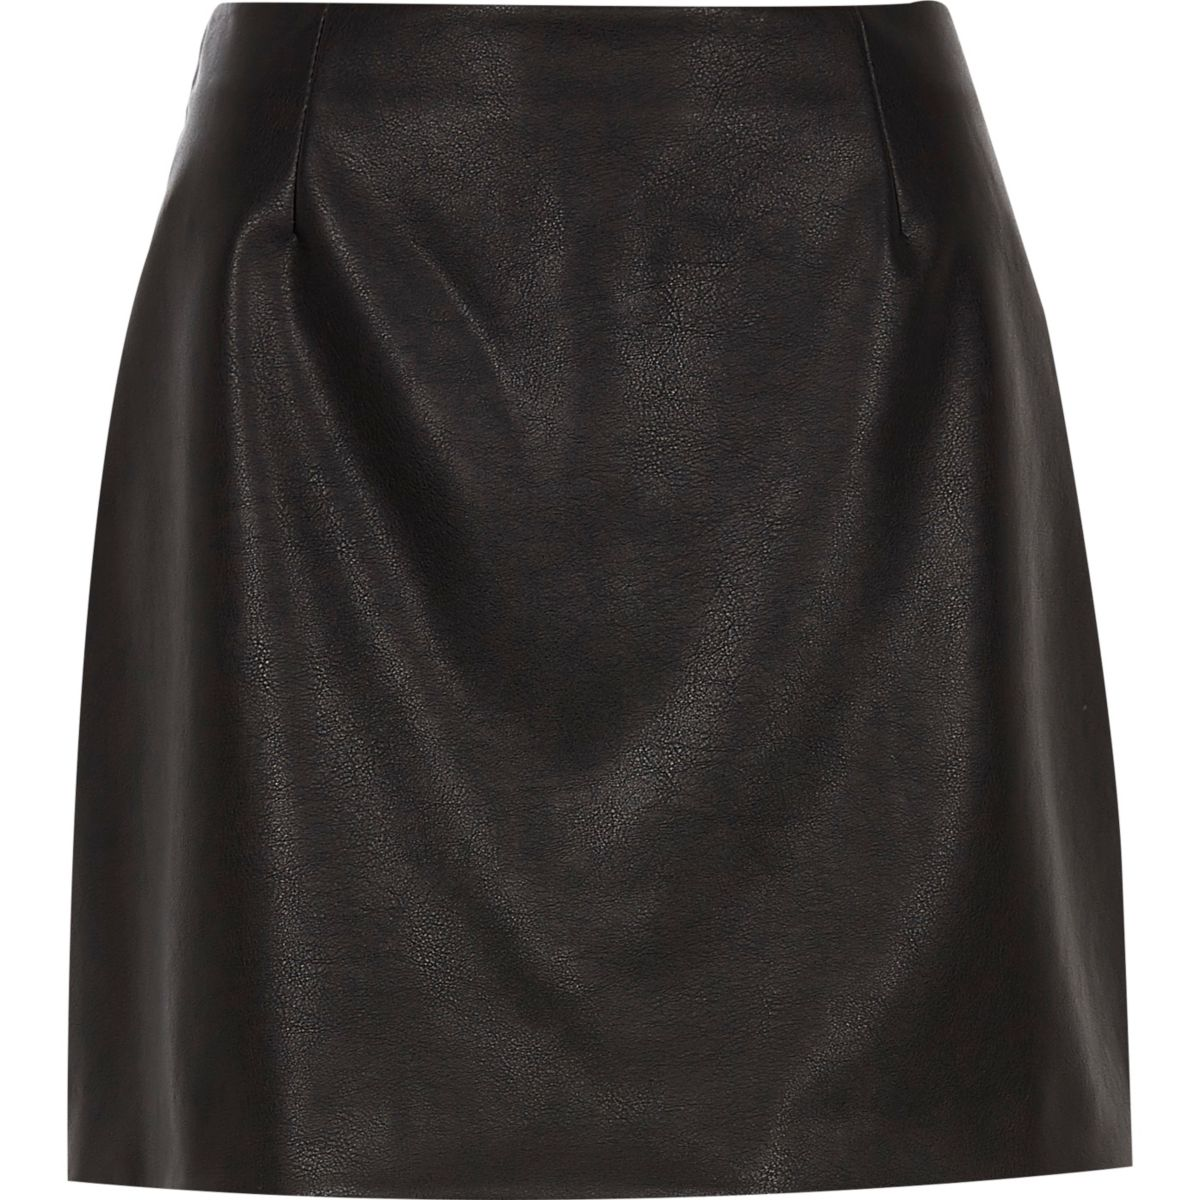 A ruffle trim adds movement to a flirty hi-lo skirt that's made from lightweight challis. Challis fabric Partially elasticized waist Pull-on style Hi-lo hem Ruffle trim Faux wrap design Unlined CONTENT + CARE Rayon Wash cold; line dry Imported plus size skirt SIZE + FIT Model is 5'8